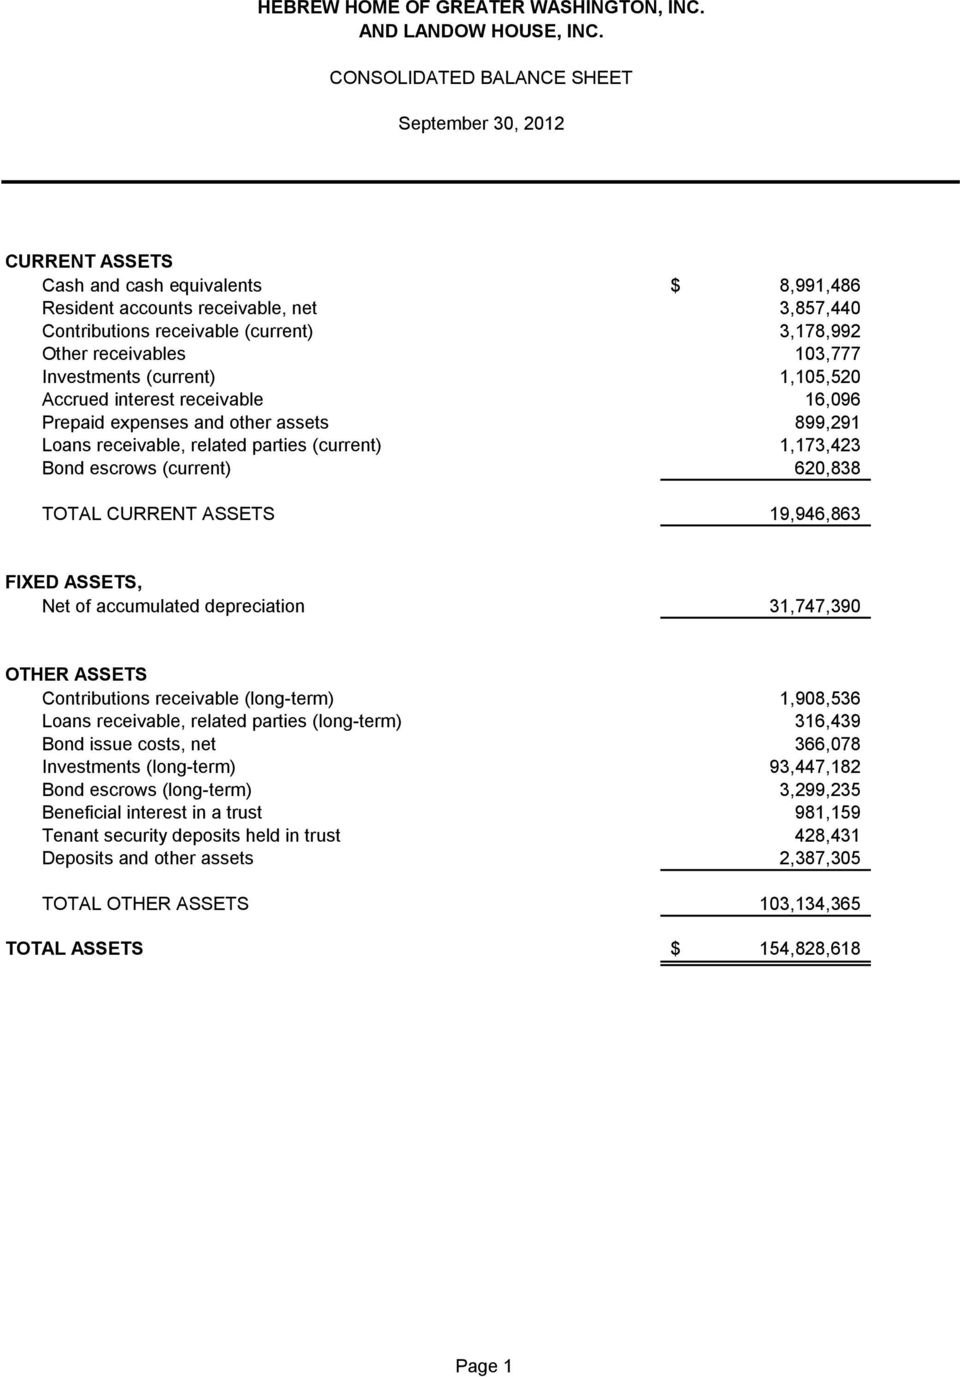 (current) 620,838 TOTAL CURRENT ASSETS 19,946,863 FIXED ASSETS, Net of accumulated depreciation 31,747,390 OTHER ASSETS Contributions receivable (long-term) 1,908,536 Loans receivable, related